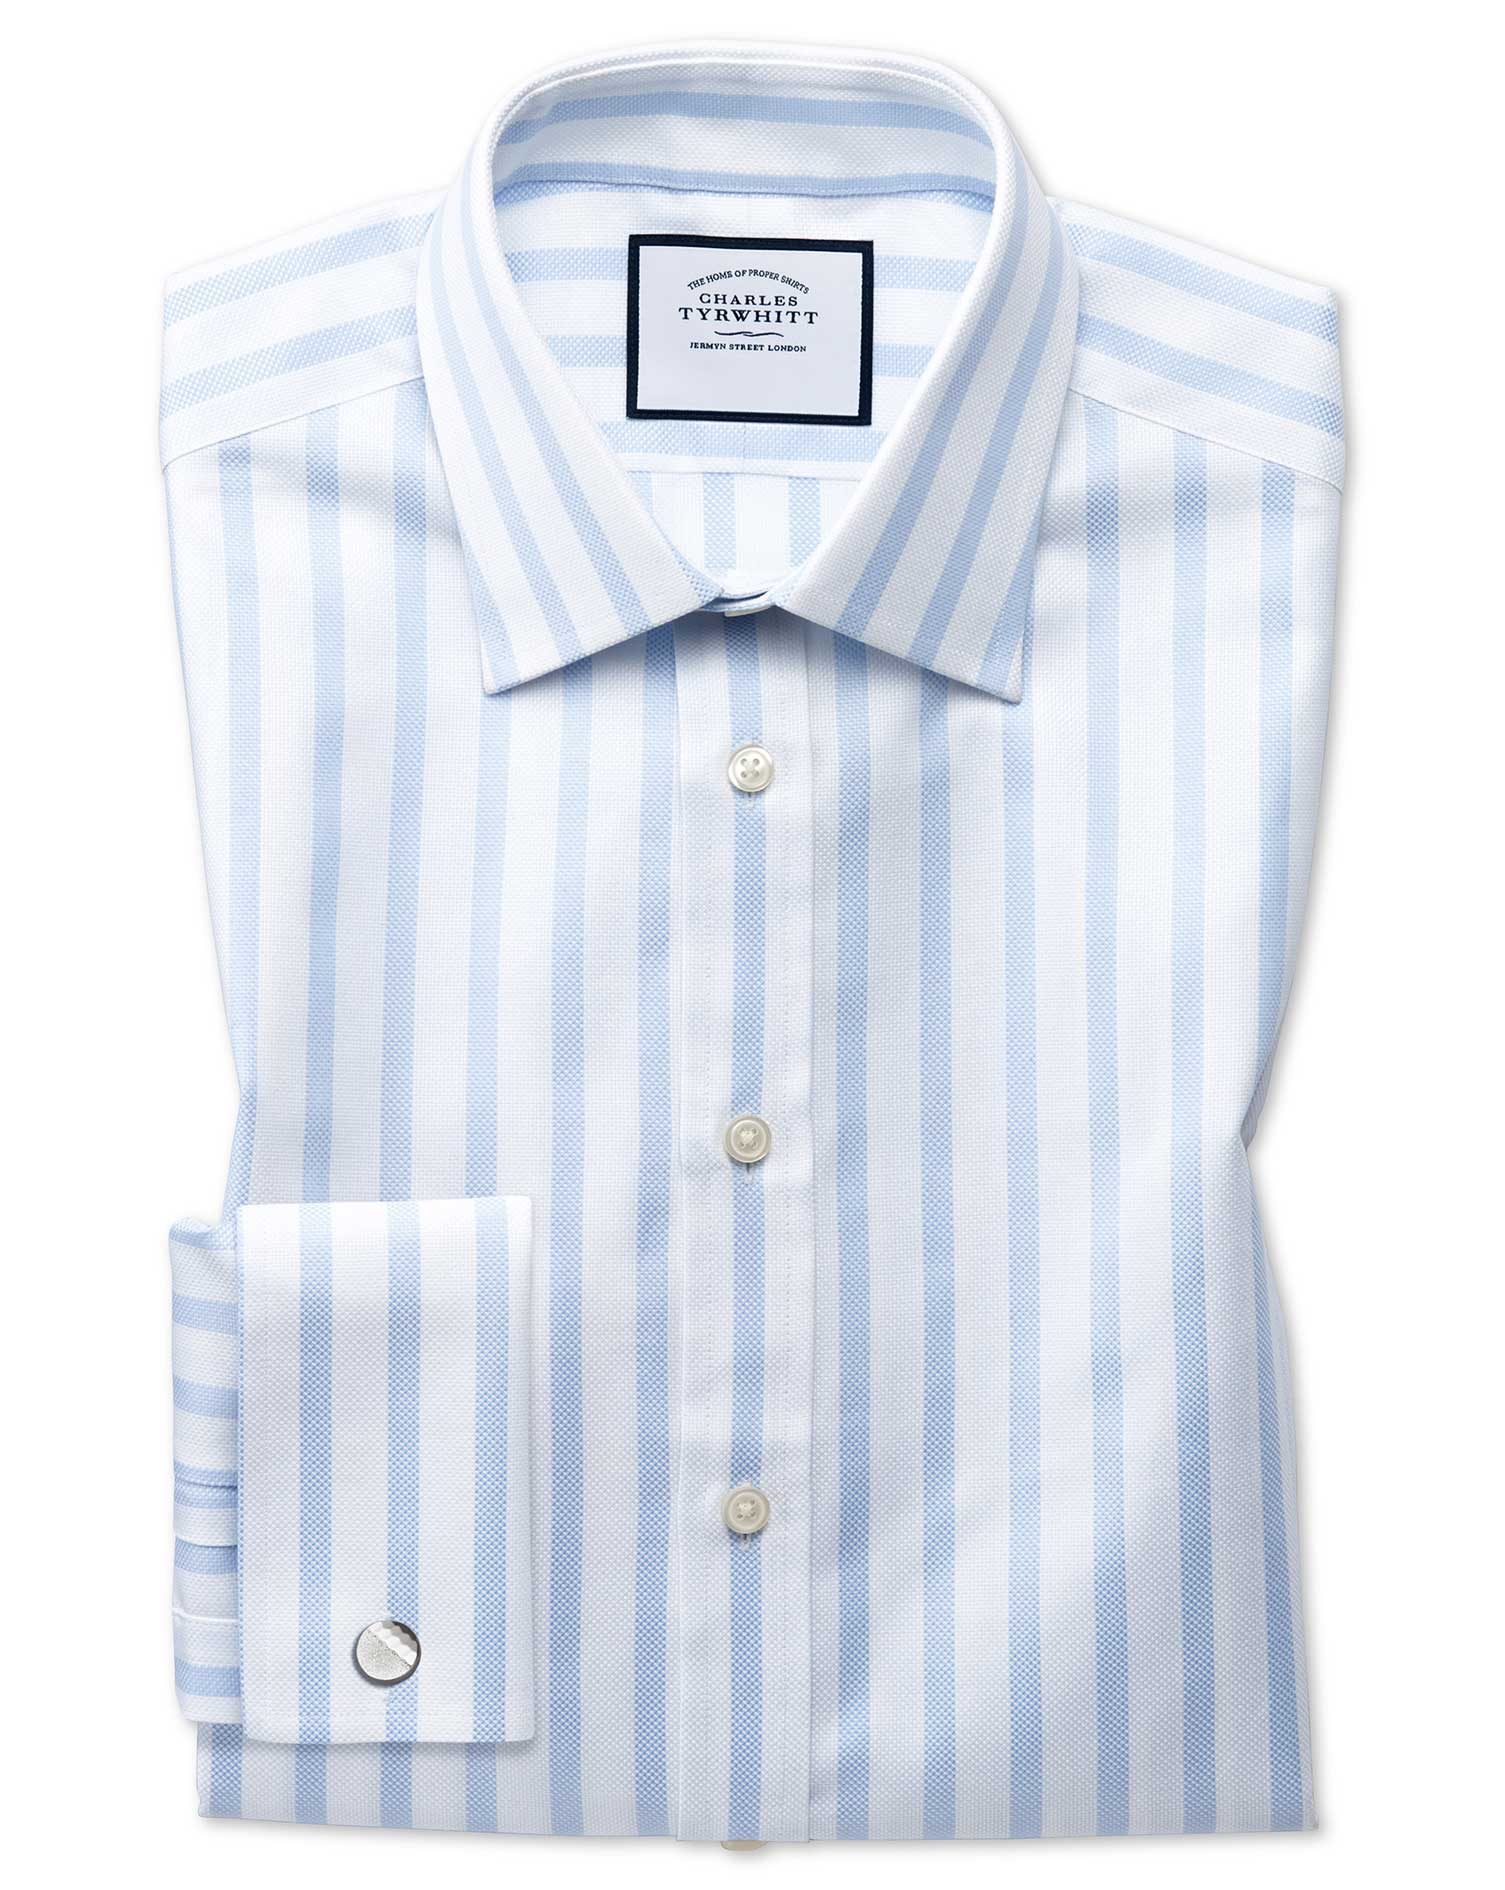 Slim Fit Egyptian Cotton Royal Oxford Sky Blue Stripe Formal Shirt Double Cuff Size 16/34 by Charles